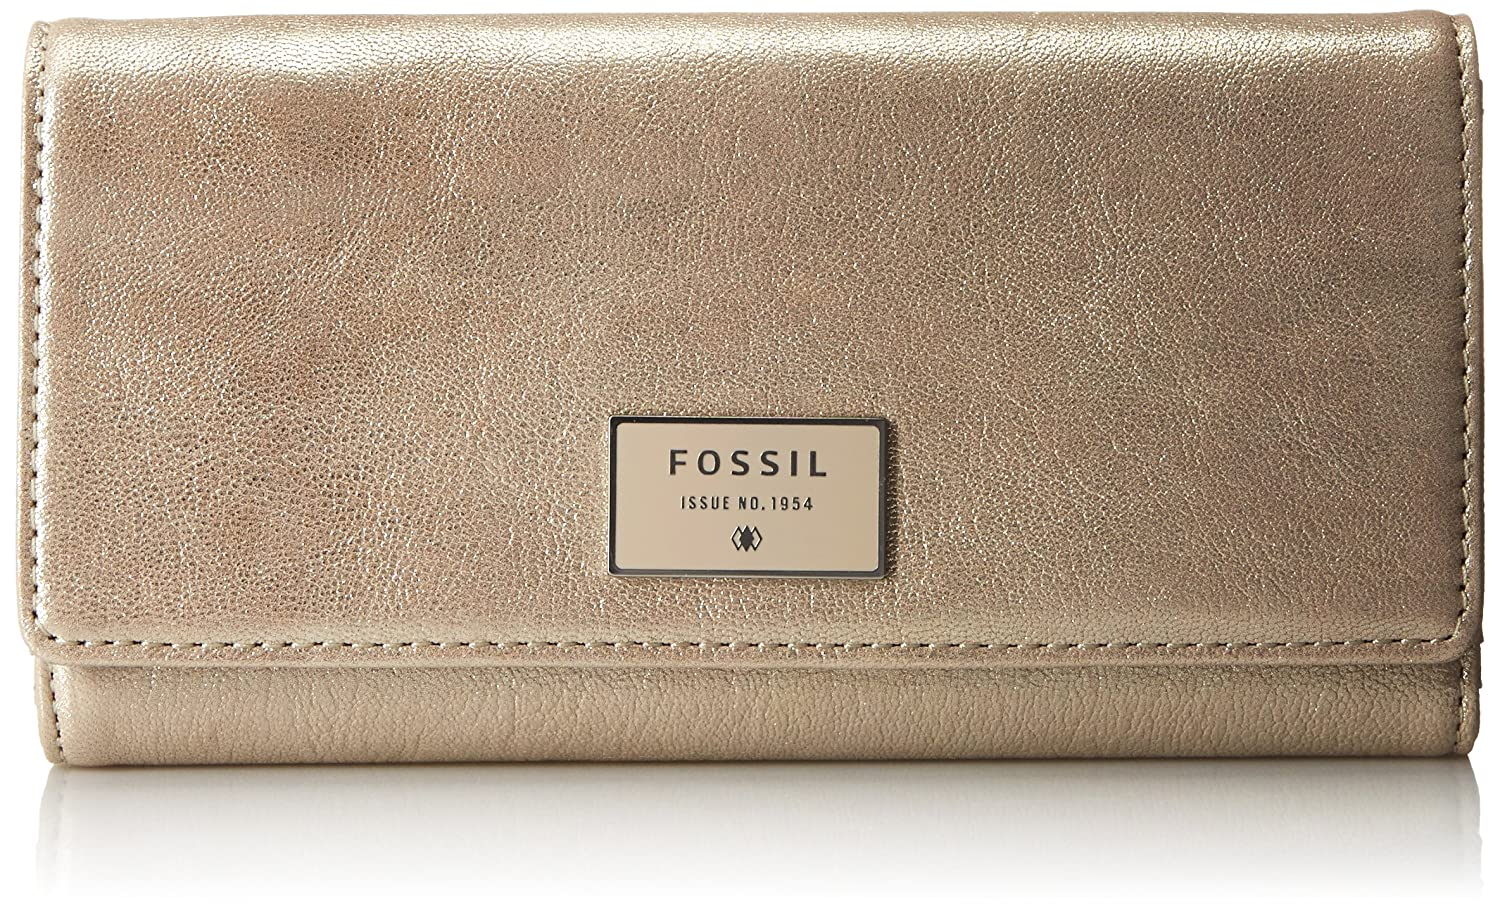 Fossil Dawson solapa Embrague Cartera: Amazon.es: Zapatos y ...